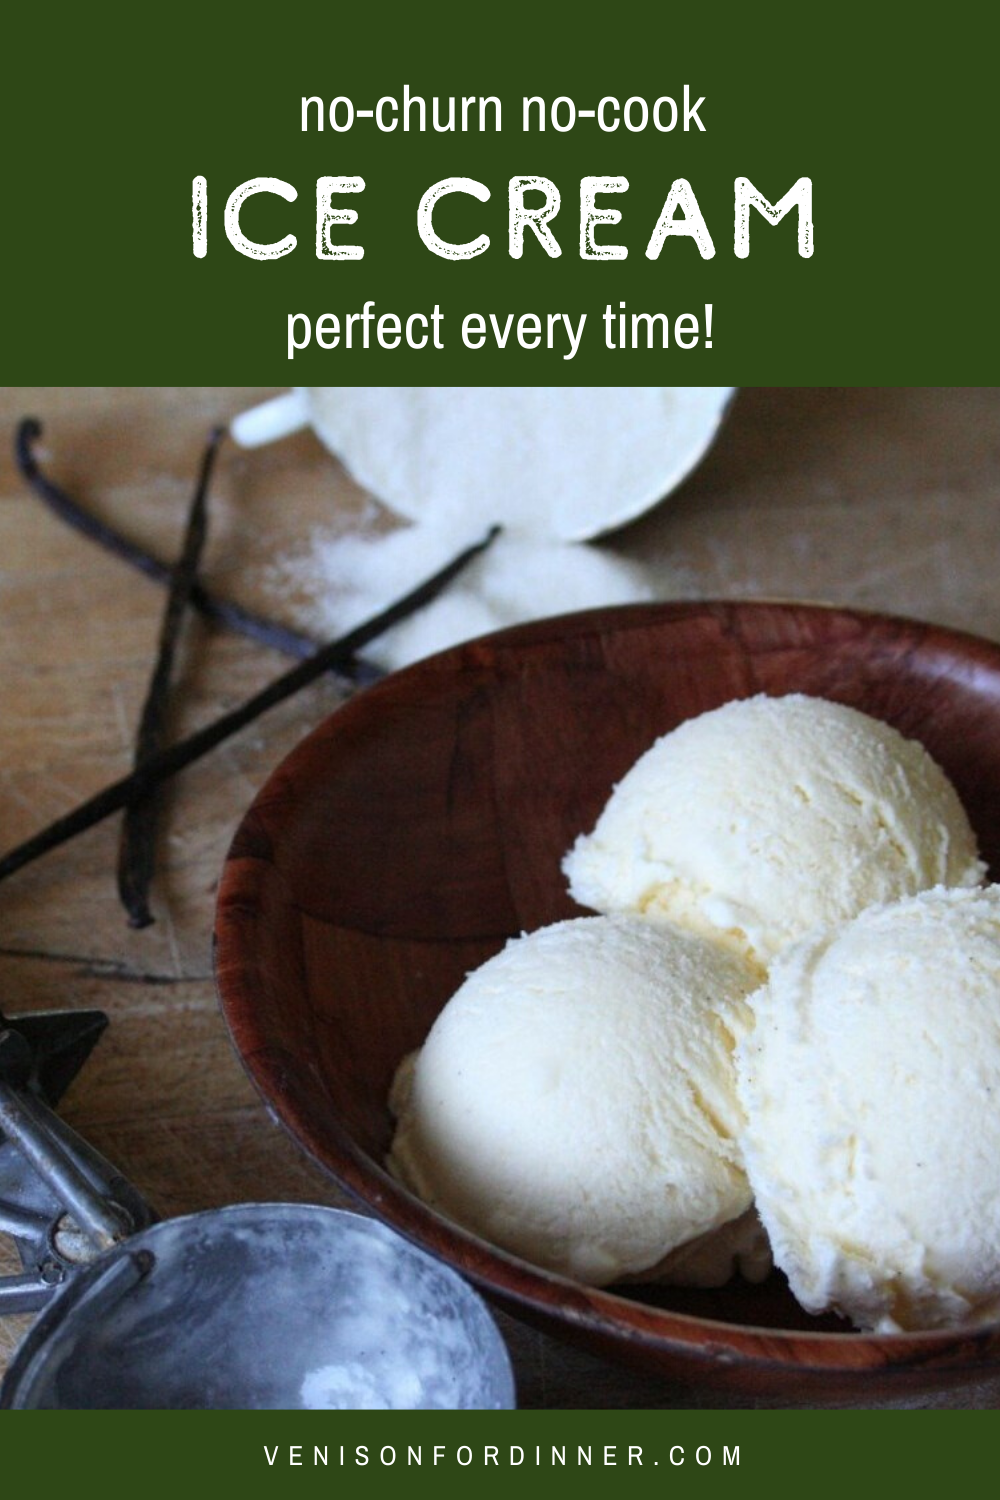 No-churn perfect every time ice cream